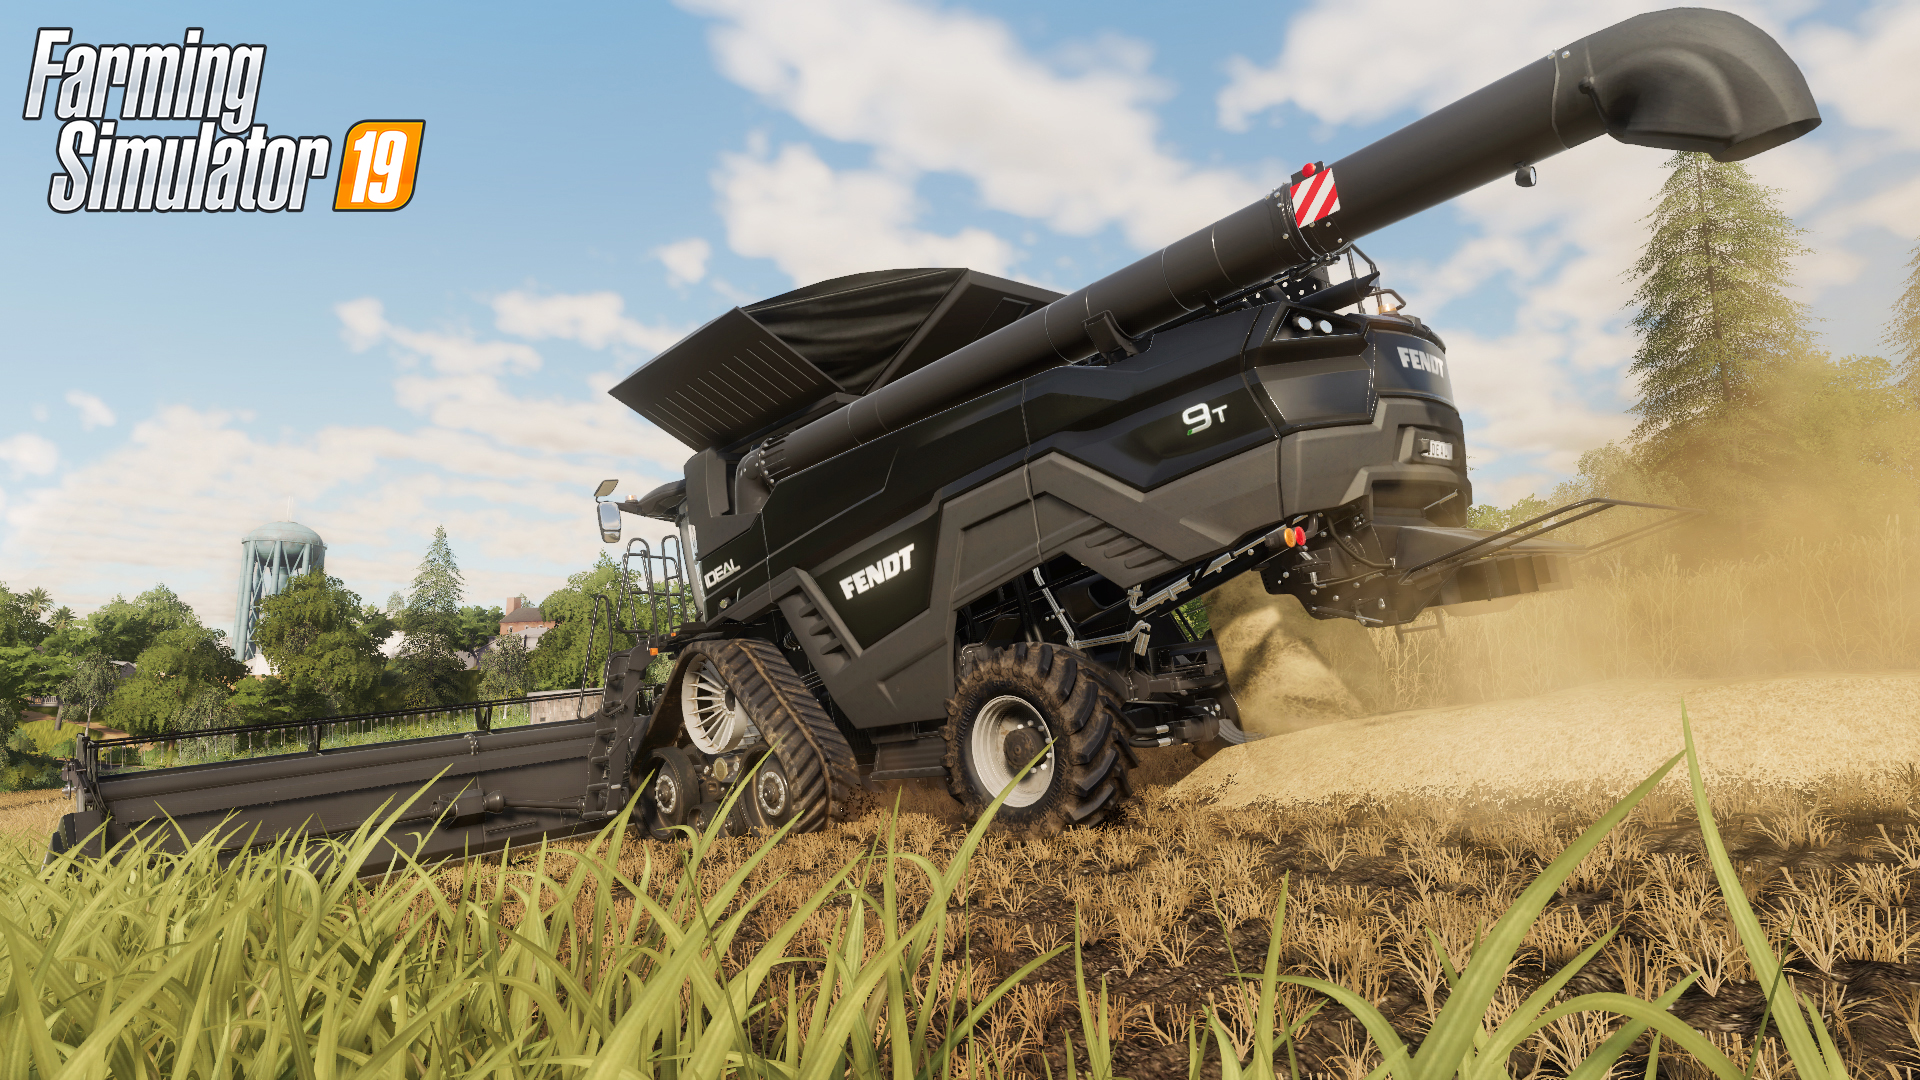 Farming Simulator 19 video trailer